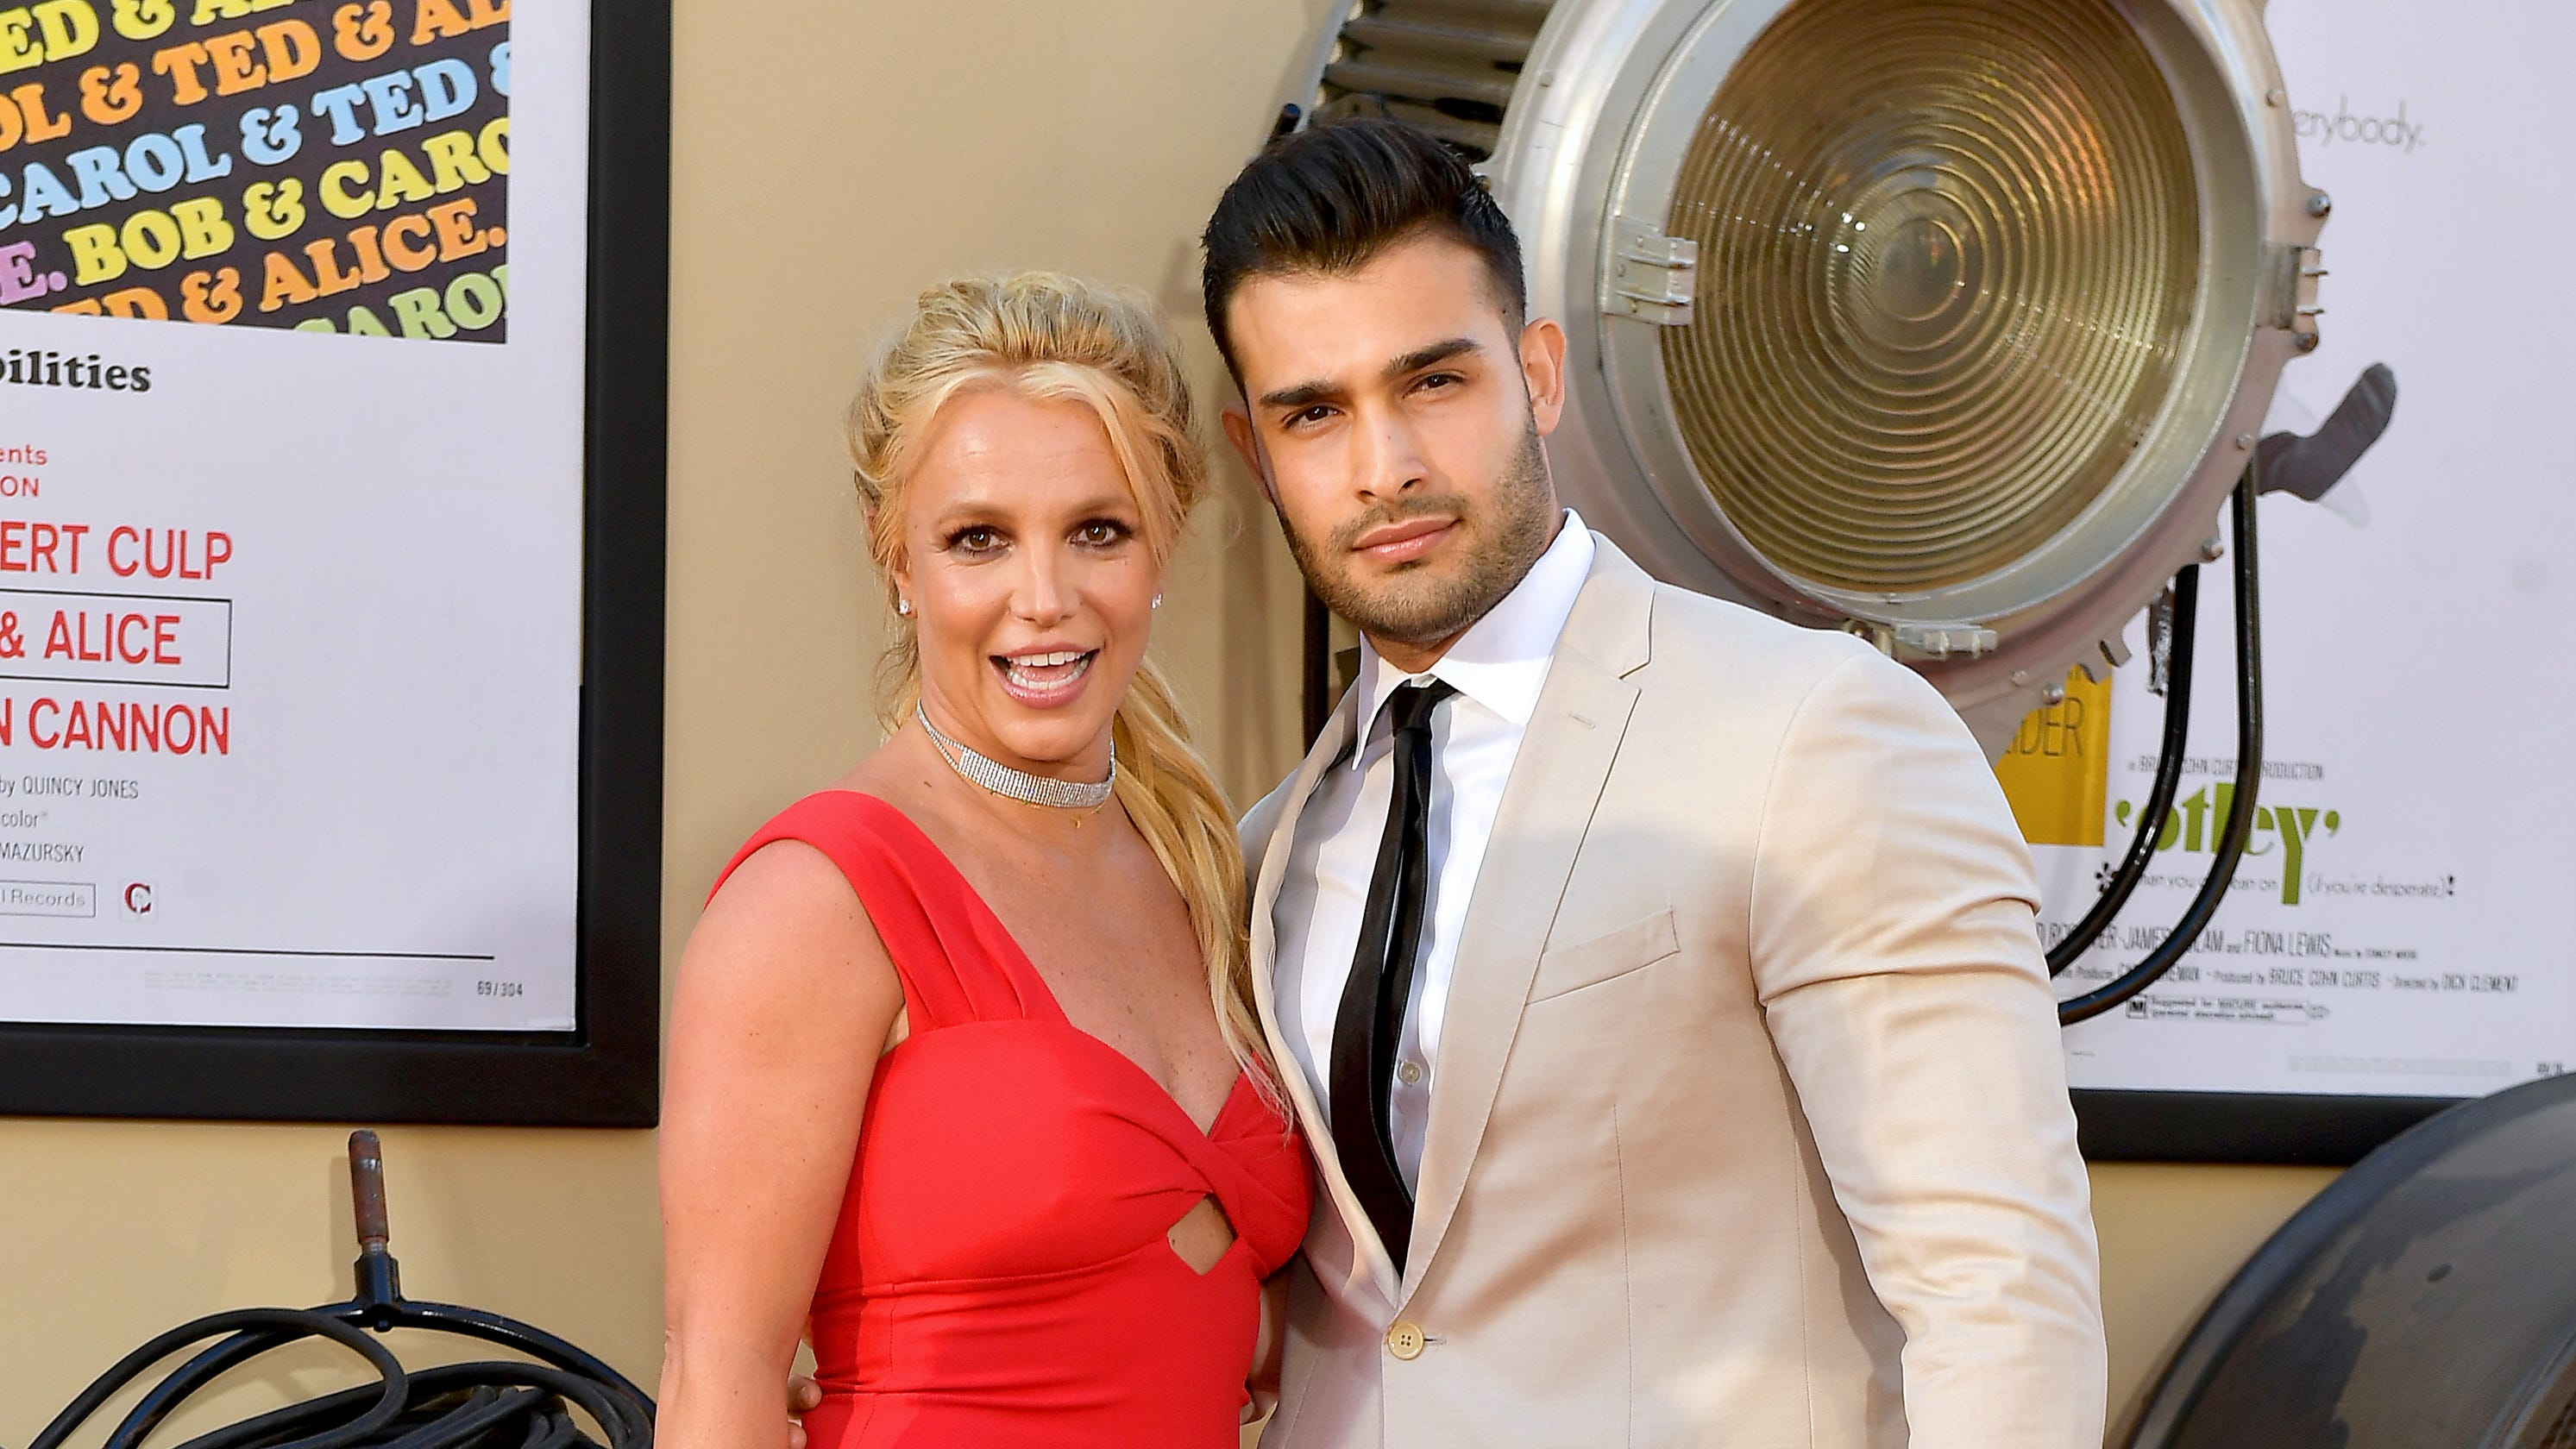 'Once Upon A Time': Britney Spears, boyfriendSam Asghari attend 'first premiere' together